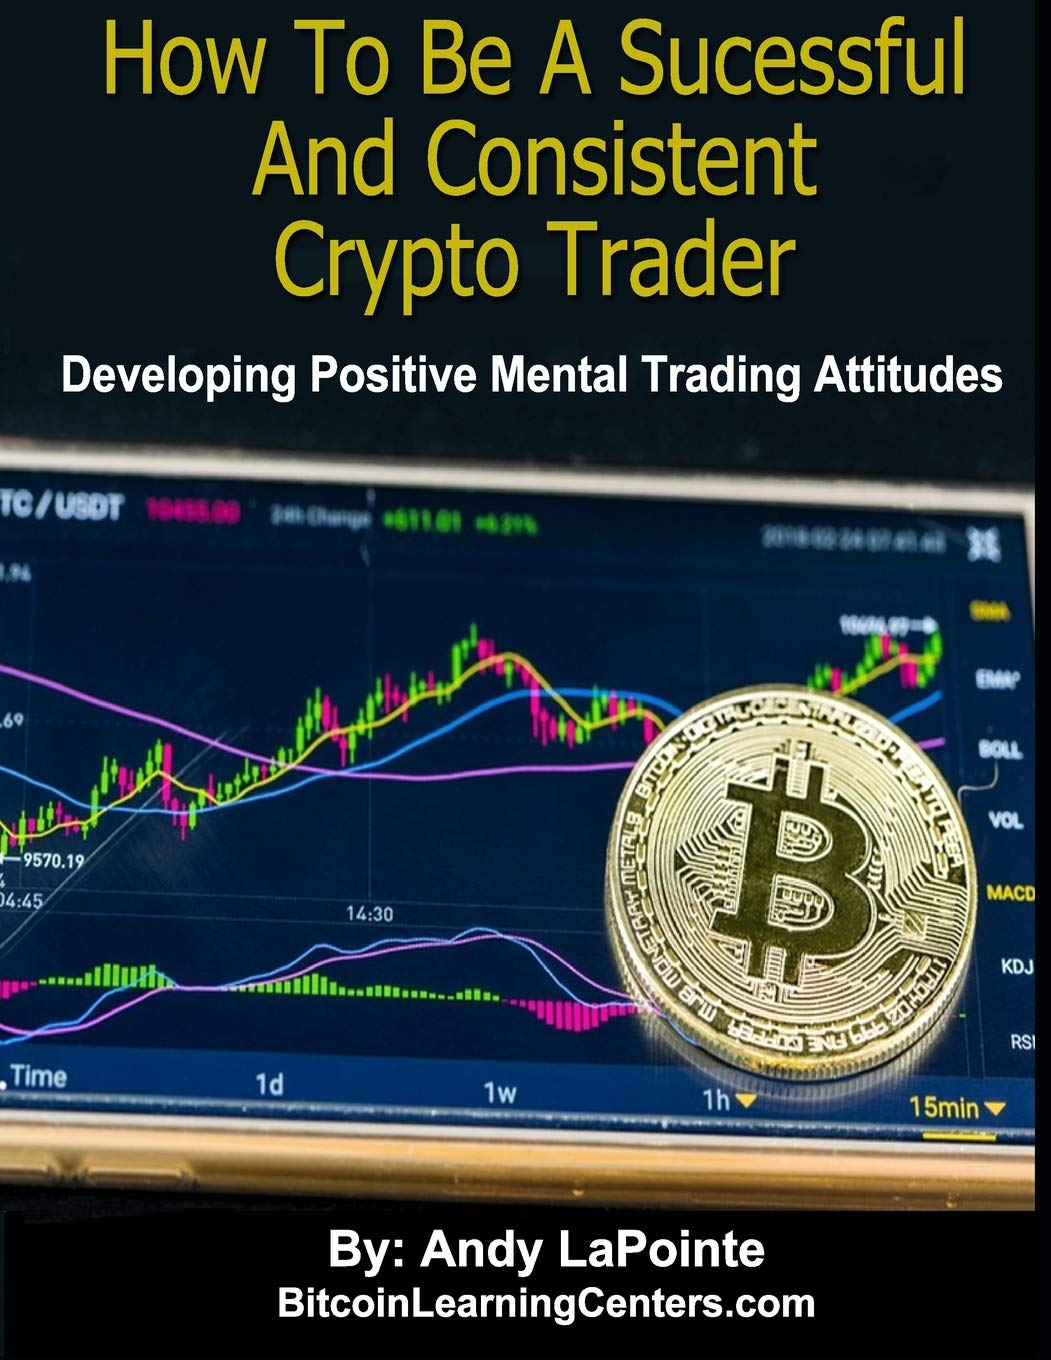 How To Be a Successful and Consistent Crypto Trader: Developing